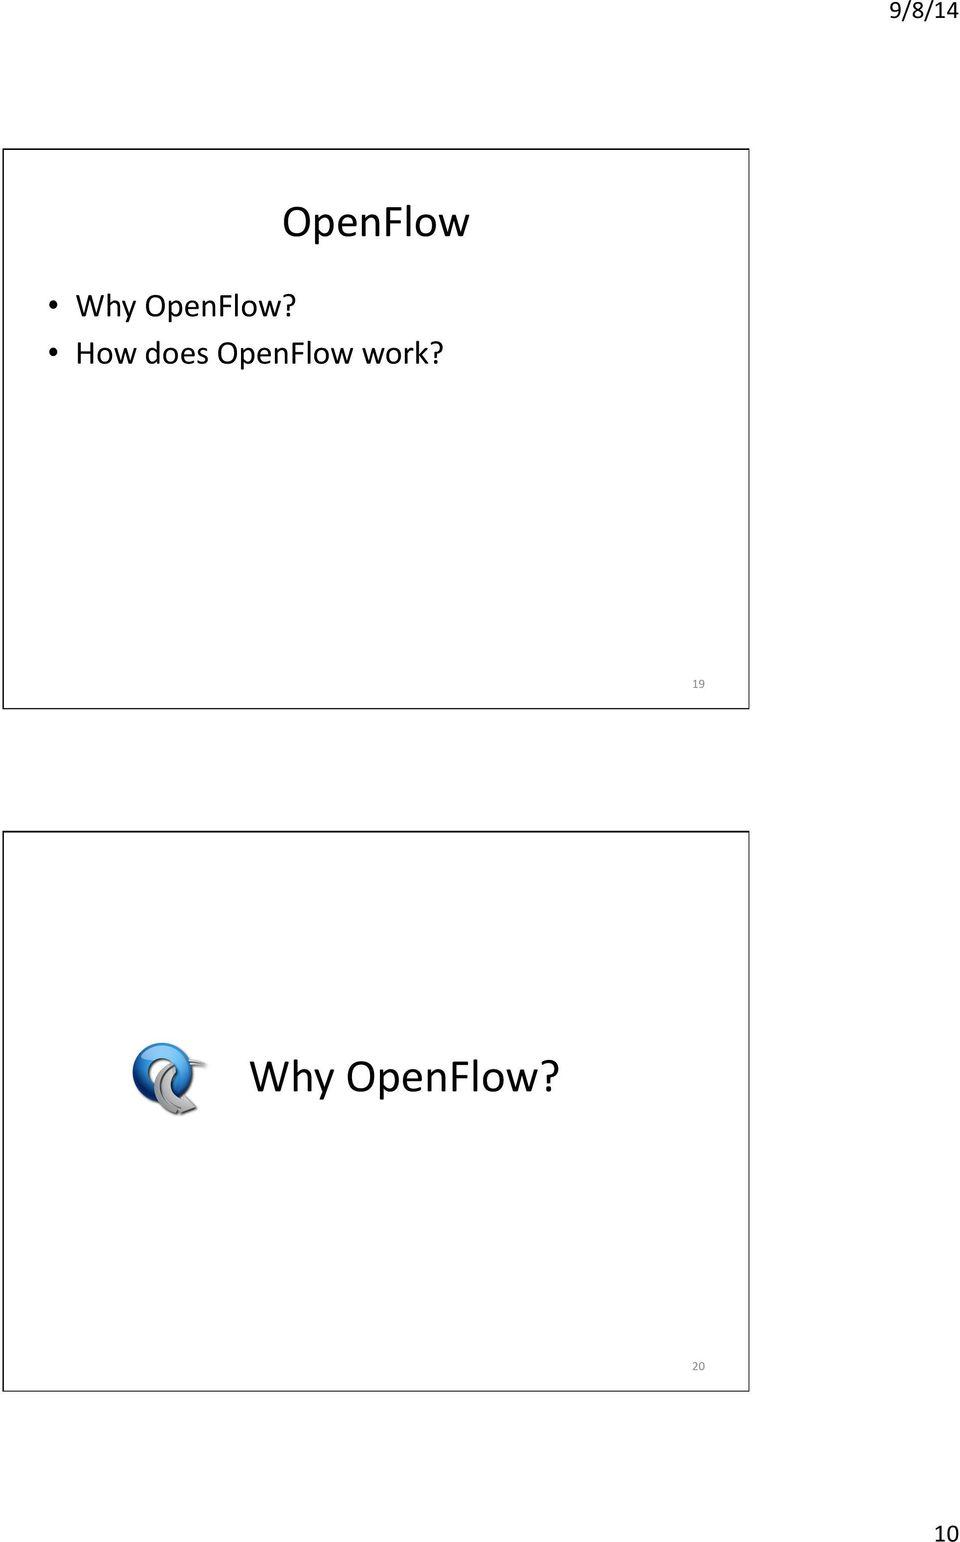 How does OpenFlow